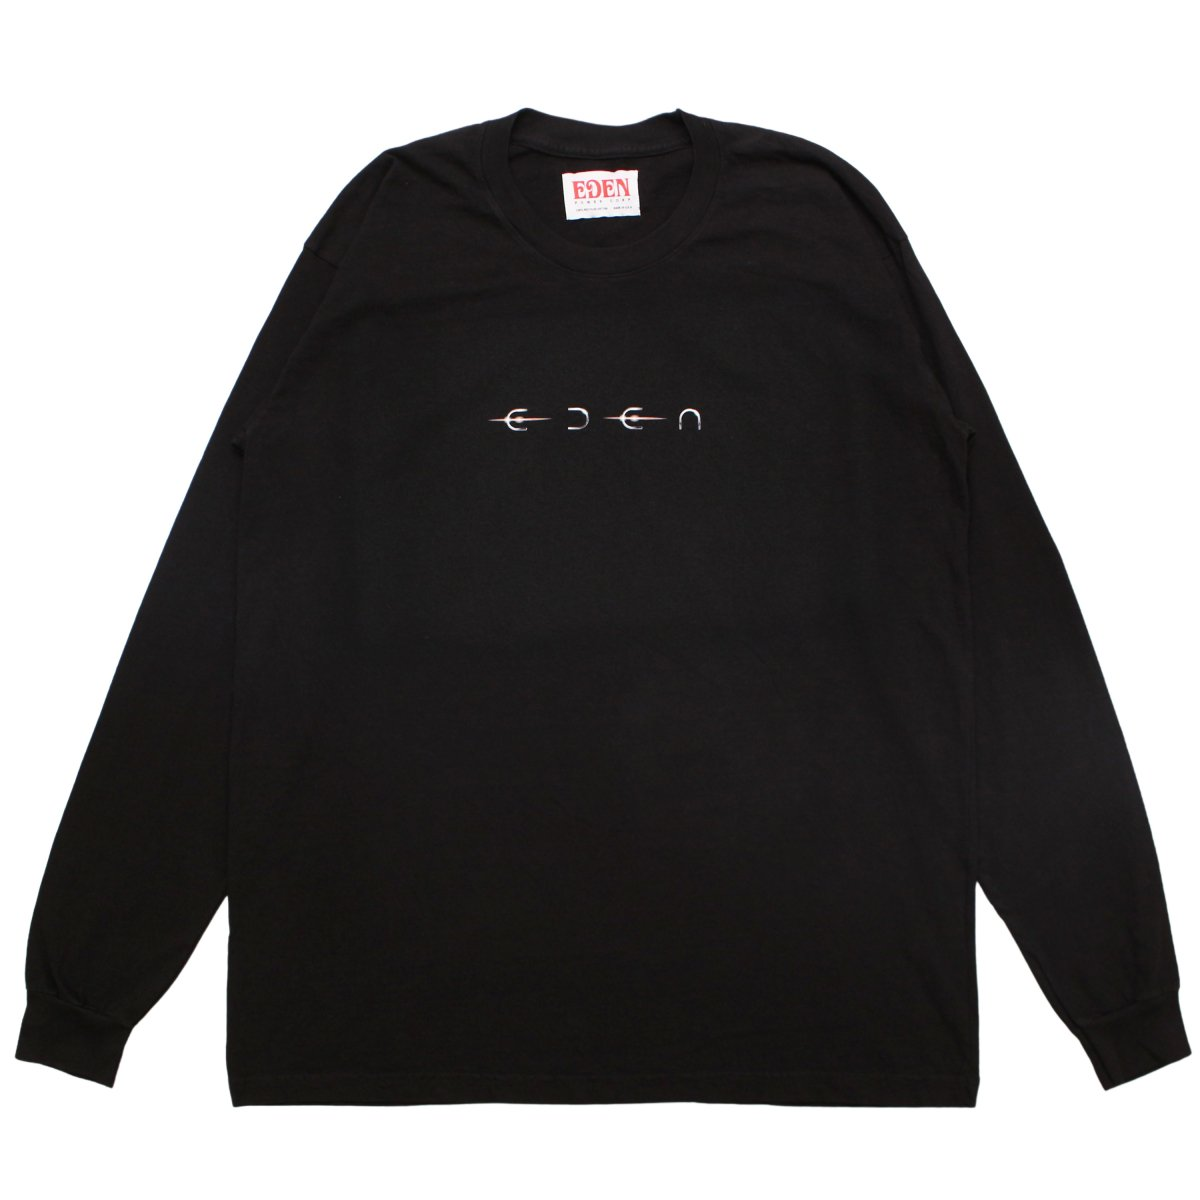 2021 Recycled Longsleeve